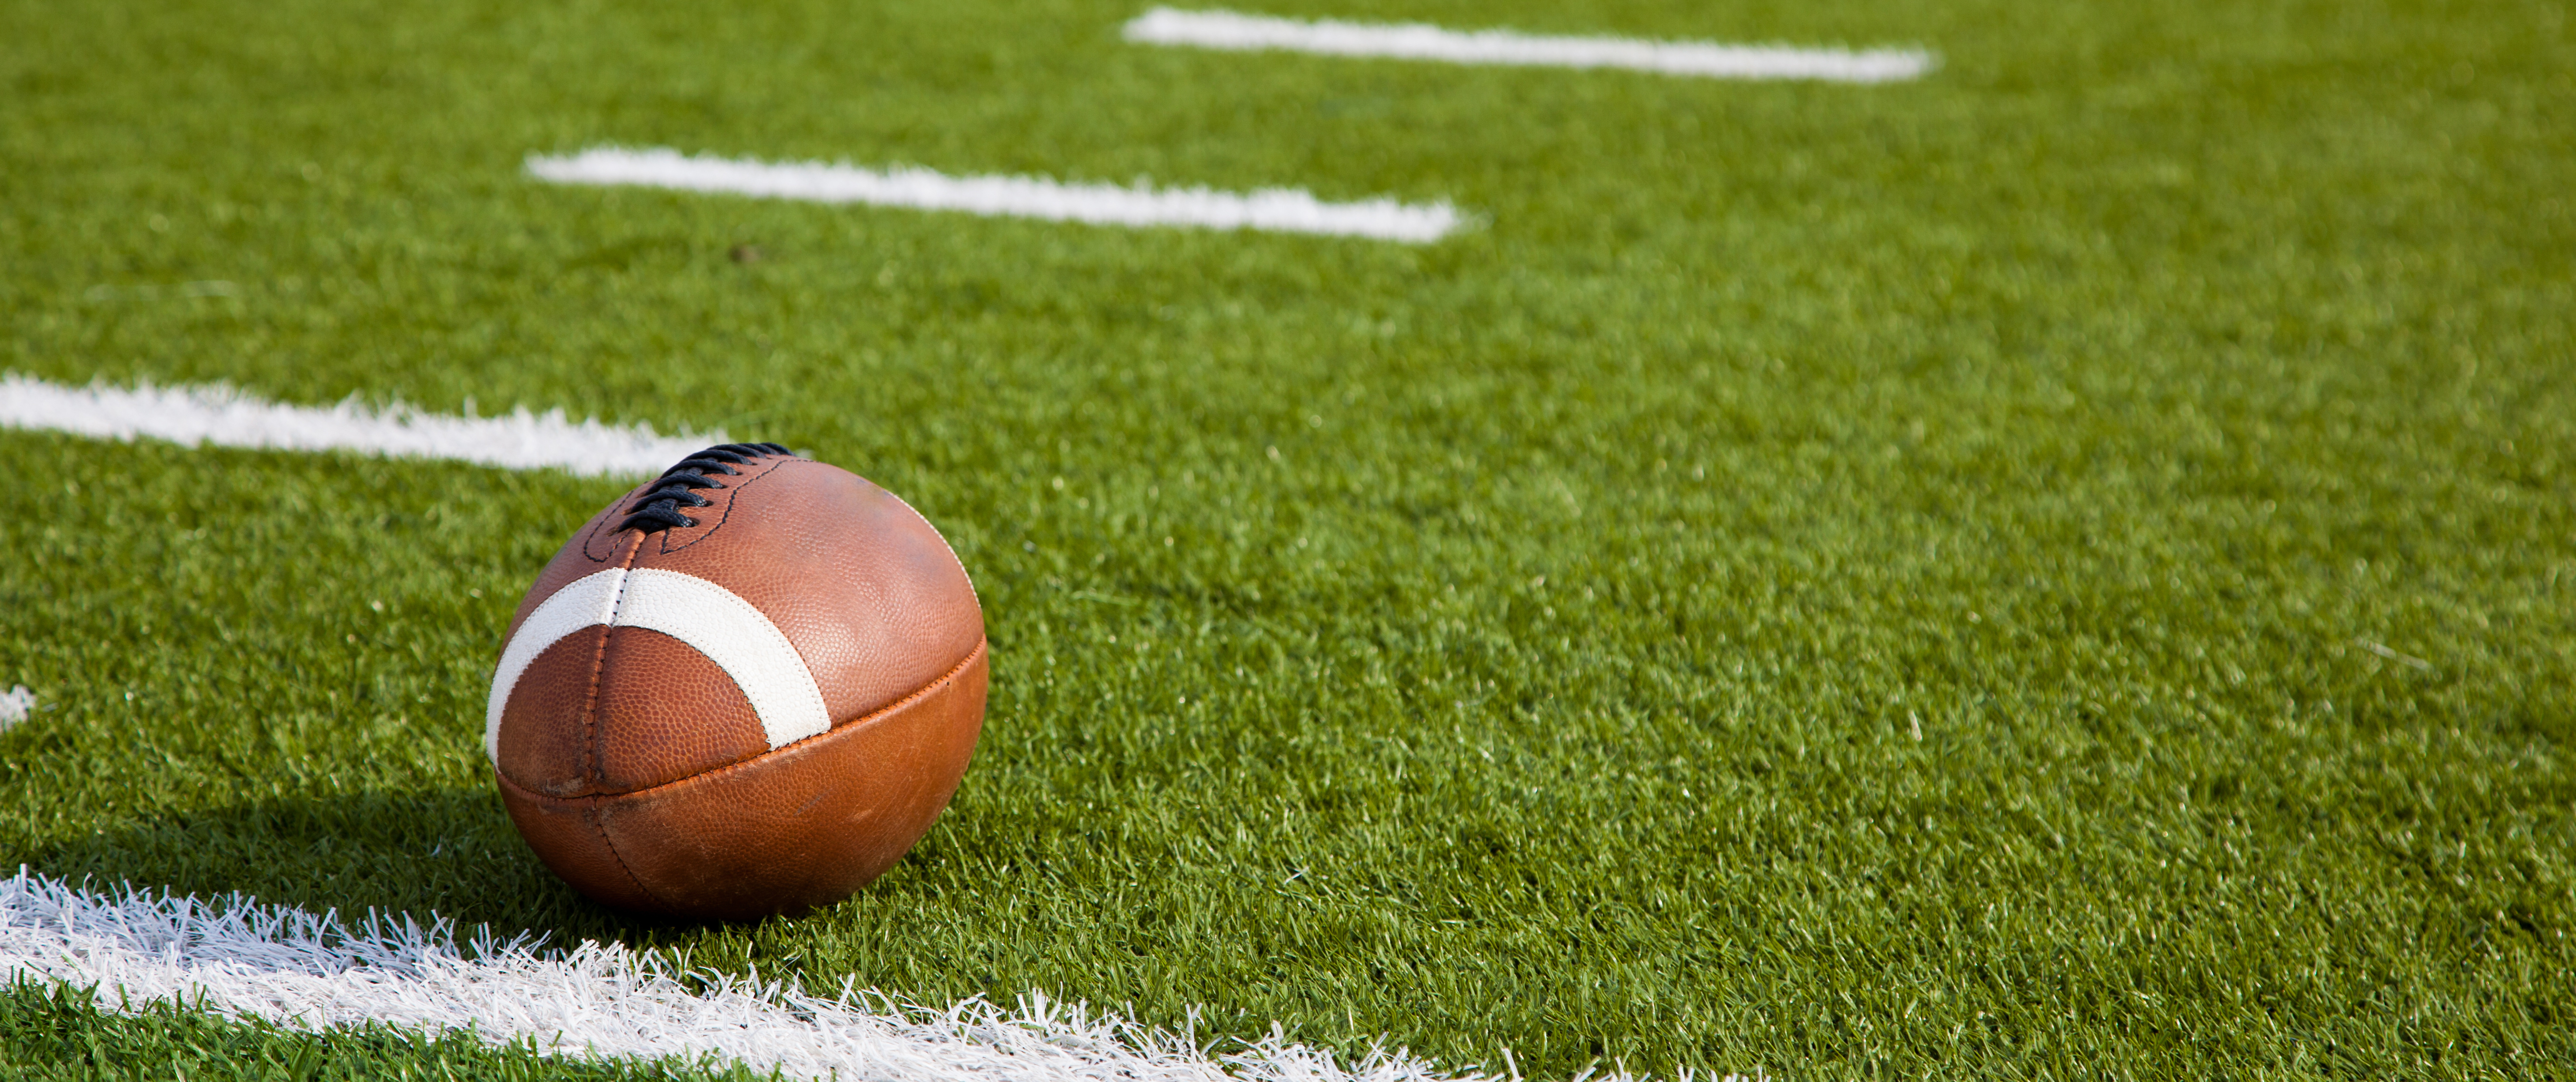 Touchdown! Football Game Day Specials From Solstice Bar & Grille